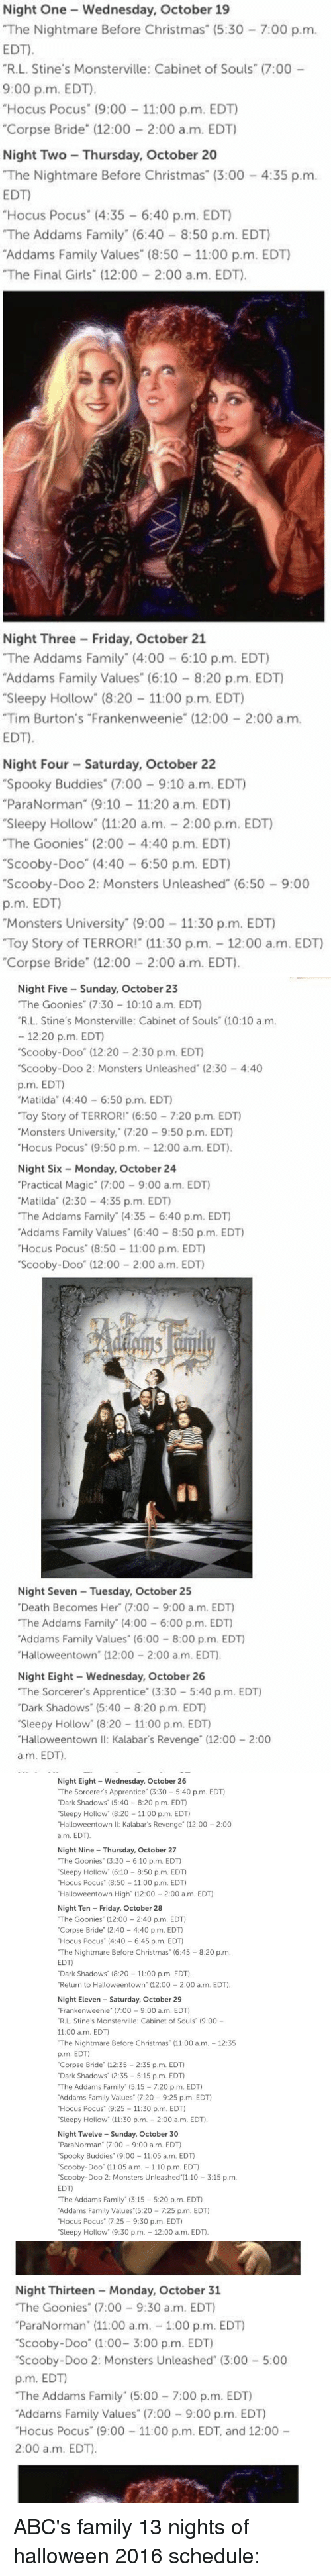 """monster university: Night One Wednesday, October 19  """"The Nightmare Before Christmas (5:30 7:00 p.m.  EDT)  """"R. L. Stine's Monsterville: Cabinet of Souls"""" (7:00  9:00 p.m. EDT.  """"Hocus Pocus"""" (9:00 11 00 p.m. EDT)  """"Corpse Bride"""" (12:00 2:00 a.m. EDT)  Night Two Thursday, October 20  """"The Nightmare Before Christmas (3:00 4:35 p.m.  EDT)  """"Hocus Pocus"""" (4:35 6:40 p.m. EDT)  """"The Addams Family"""" (6:40 8:50 p.m. EDT)  Addams Family Values (8:50 11:00 p.m. EDT)  """"The Final Girls"""" (12:00 2:00 a.m. EDT).  Night Three Friday, October 21  """"The Addams Family (4:00 6:10 p.m. EDT)  Addams Family Values"""" (6:10 8:20 p.m. EDT)  """"Sleepy Hollow"""" (8:20 11:00 p.m. EDT)  """"Tim Burton's """"Frankenweenie (12:00 2:00 a.m.  EDT)  Night Four Saturday, October 22  """"Spooky Buddies"""" (7:00 9:10 a.m. EDT)  """"ParaNorman (9:10 -11:20 a.m. EDT)  Sleepy Hollow"""" (11:20 a.m. 2:00 p.m. EDT)  """"The Goonies"""" (2:00 4:40 p.m. EDT)  """"Scooby-Doo"""" (4:40 6:50 p.m. EDT)  """"Scooby-Doo 2: Monsters Unleashed (6:50 9:00  p.m. EDT)  """"Monsters University (9:00 11:30 p.m. EDT)  Toy Story of TERROR! (11:30 p.m. 12:00 a.m. EDT  """"Corpse Bride"""" (12:00 2:00 a.m. EDT).   Night Five Sunday, October 23  """"The Goonies"""" (7:30 10:10 a.m. EDT  """"R.L. Stine's Monsterville: Cabinet of Souls (10:10 a.m.  12:20 p.m. EDT)  """"Scooby-Doo"""" (12:20 2:30 p.m. EDT)  """"Scooby-Doo 2: Monsters Unleashed (2:30 4:40  p.m. EDT)  """"Matilda (4:40 6:50 p.m. EDT)  """"Toy Story of TERROR! (6:50 7:20 p.m. EDT)  Monsters University,"""" (7:20  9:50 p.m. EDT)  Hocus Pocus"""" (9:50 p.m. 12:00 a.m. EDT  Night Six Monday, October 24  """"Practical Magic (7:00 9:00 a.m. EDT)  """"Matilda (2:30 4:35 p.m. EDT)  """"The Addams Family"""" (4:35 6:40 p.m. EDT)  Addams Family Values (6:40 8:50 p.m. EDT)  """"Hocus Pocus (8:50 11:00 p.m. EDT)  """"Scooby-Doo"""" (12:00 2:00 a.m. EDT)  Night Seven Tuesday, October 25  """"Death Becomes Her"""" (7:00 9:00 a.m. EDT)  """"The Addams Family"""" (4:00 6:00 p.m. EDT)  Addams Family Values"""" (6:00 8:00 p.m. EDT)  """"Halloweentown (12:00 2:00 am. EDT).  Night Eight Wednesday, O"""